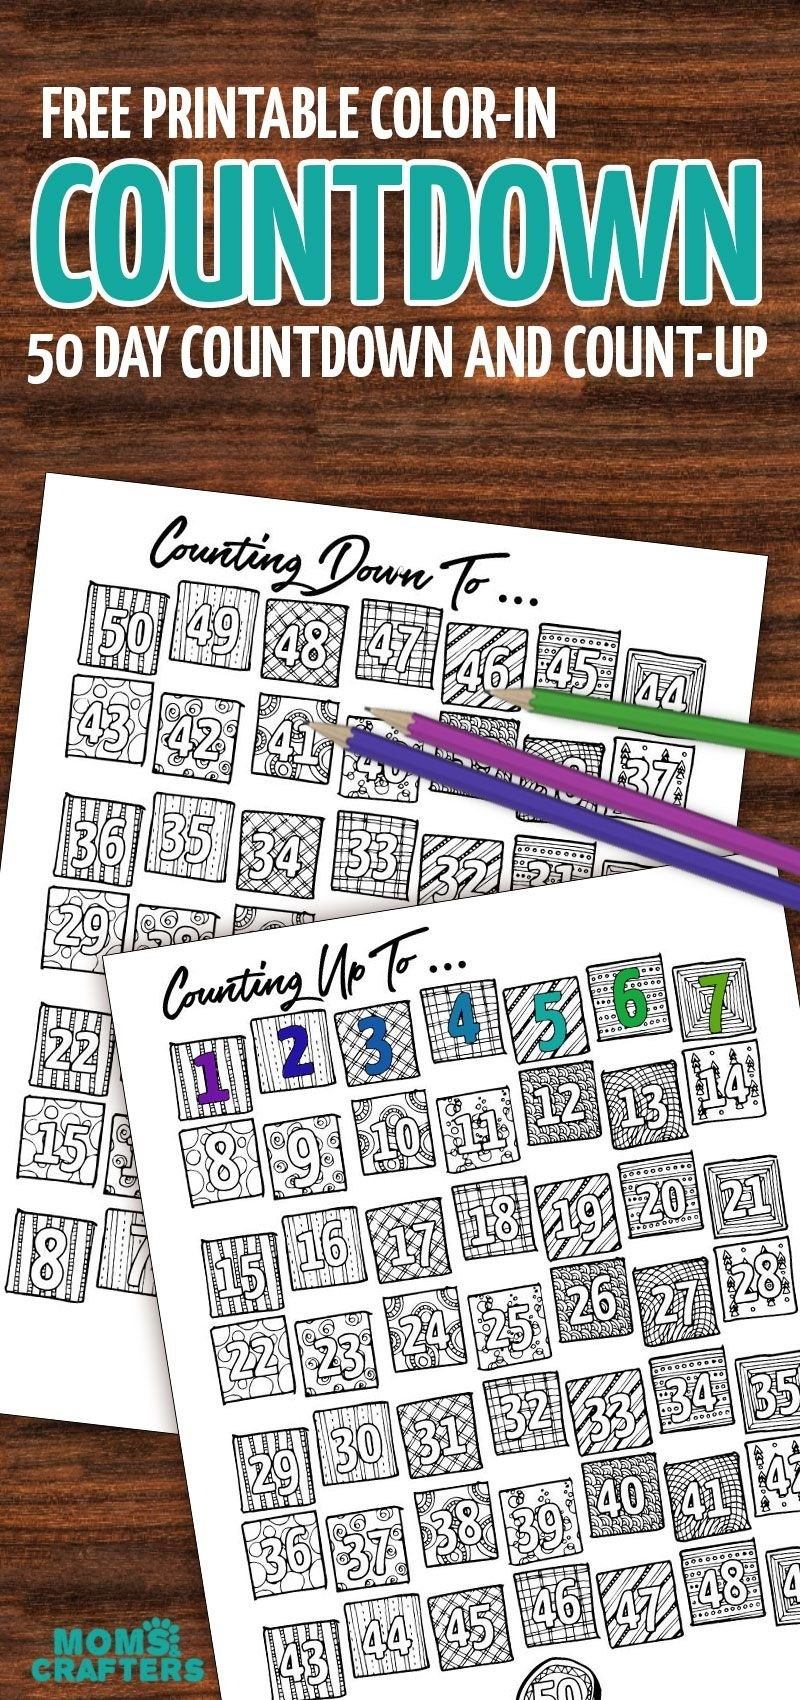 Grab This Fun Color-In Countdown And Progress Tracker 100 Day Countdown Calendar Printable